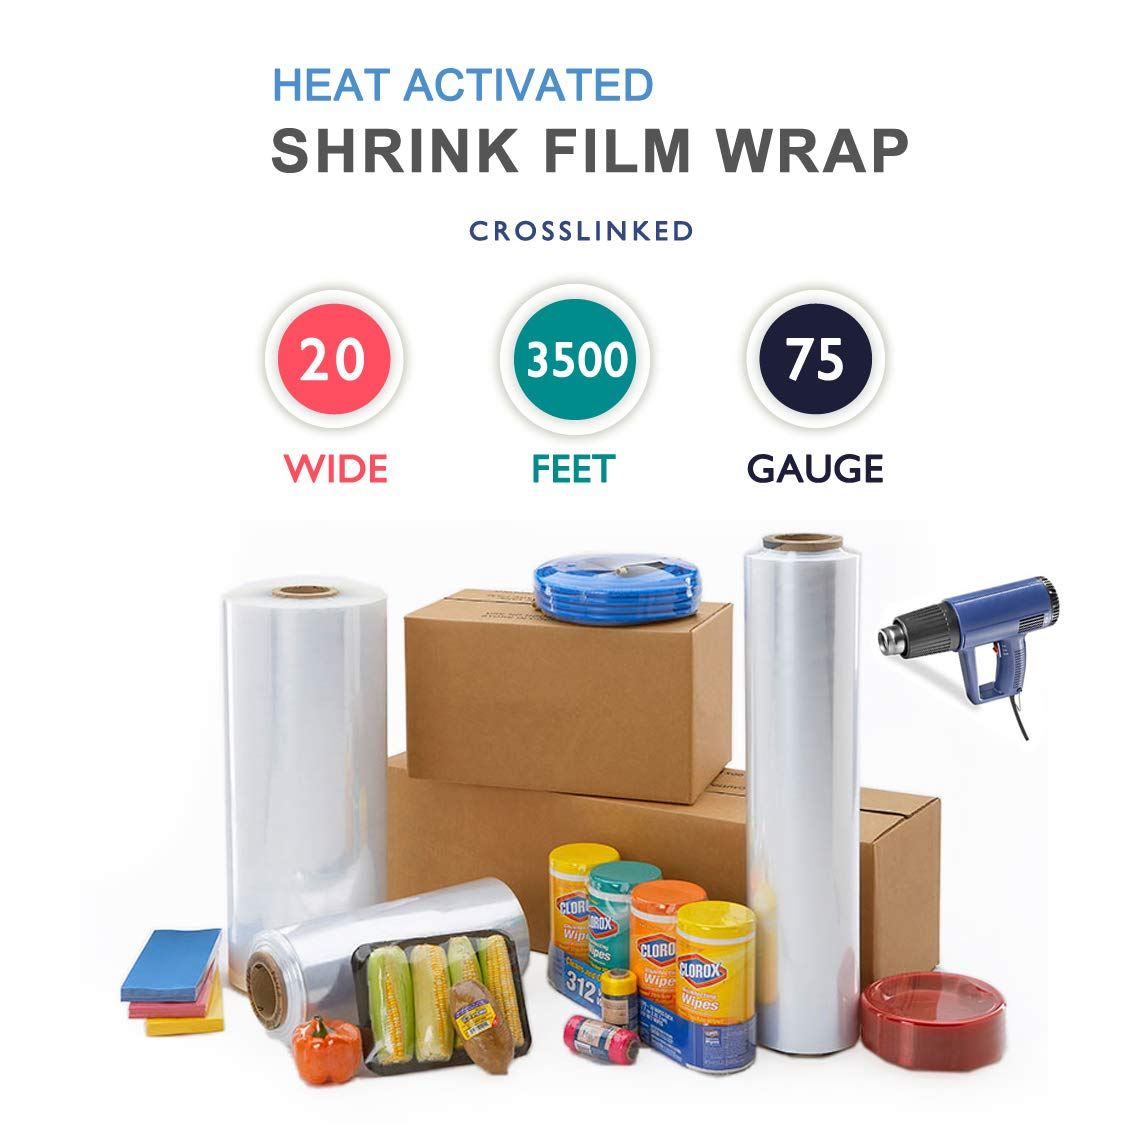 20'' x 3500 ft. Heat Shrink Film Wrap Strong Centerfold Polyolefin 75 Gauge Cross-Linked Heat Activated Shrink Wrap, 1 Roll